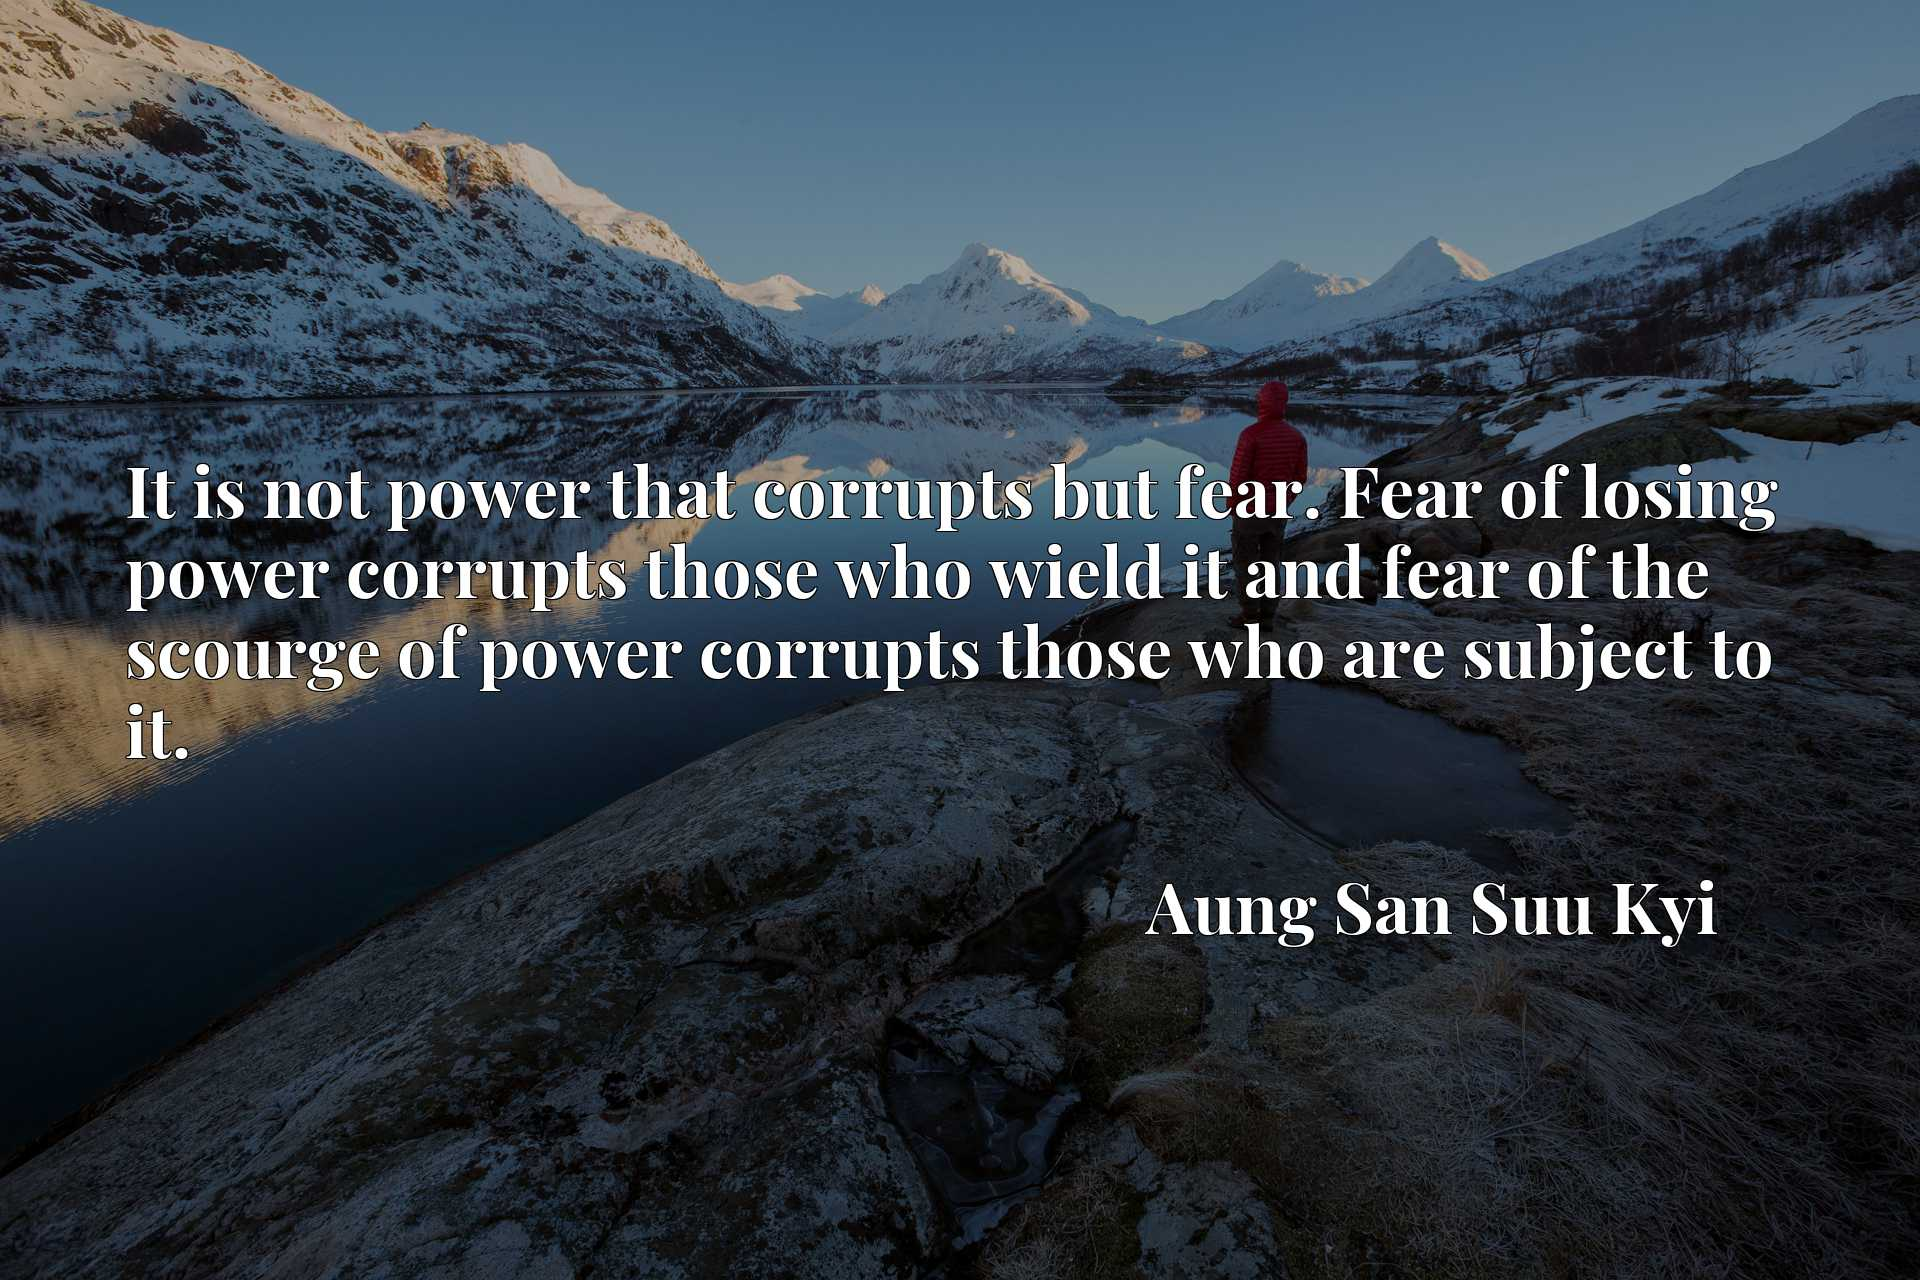 It is not power that corrupts but fear. Fear of losing power corrupts those who wield it and fear of the scourge of power corrupts those who are subject to it.